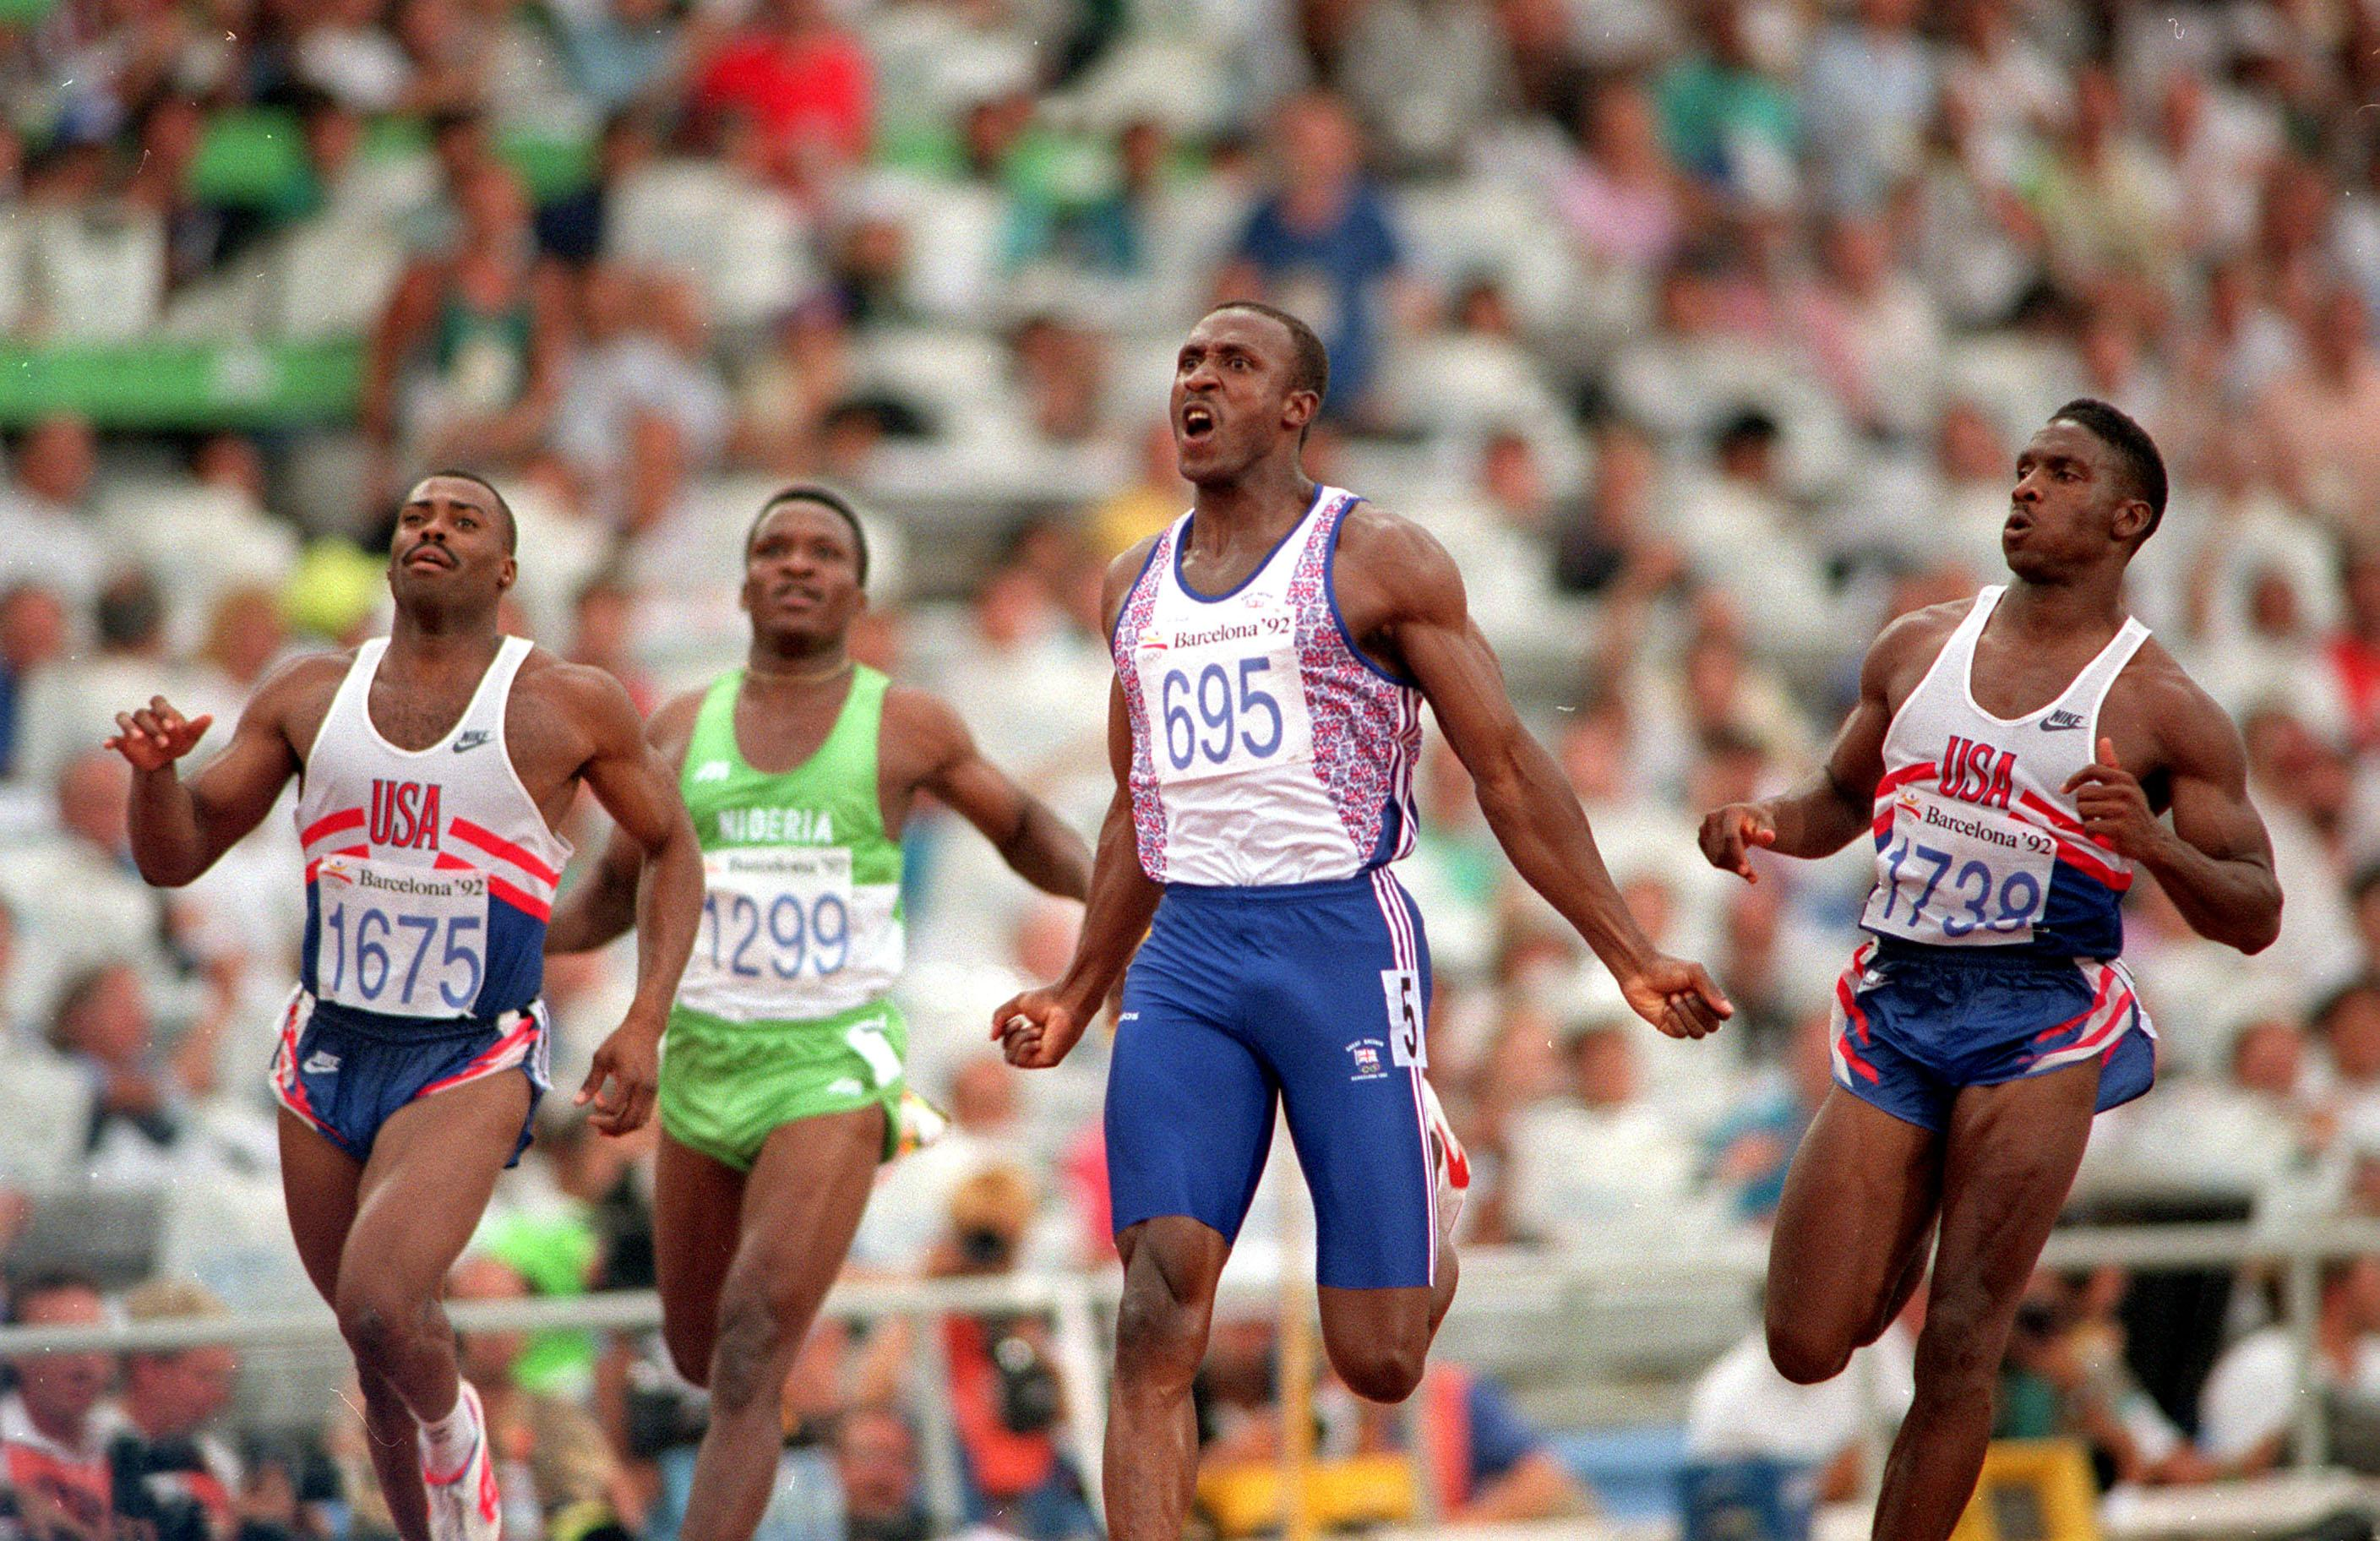 Linford Christies mark of 9.87sec from 1993 still stands as the British record